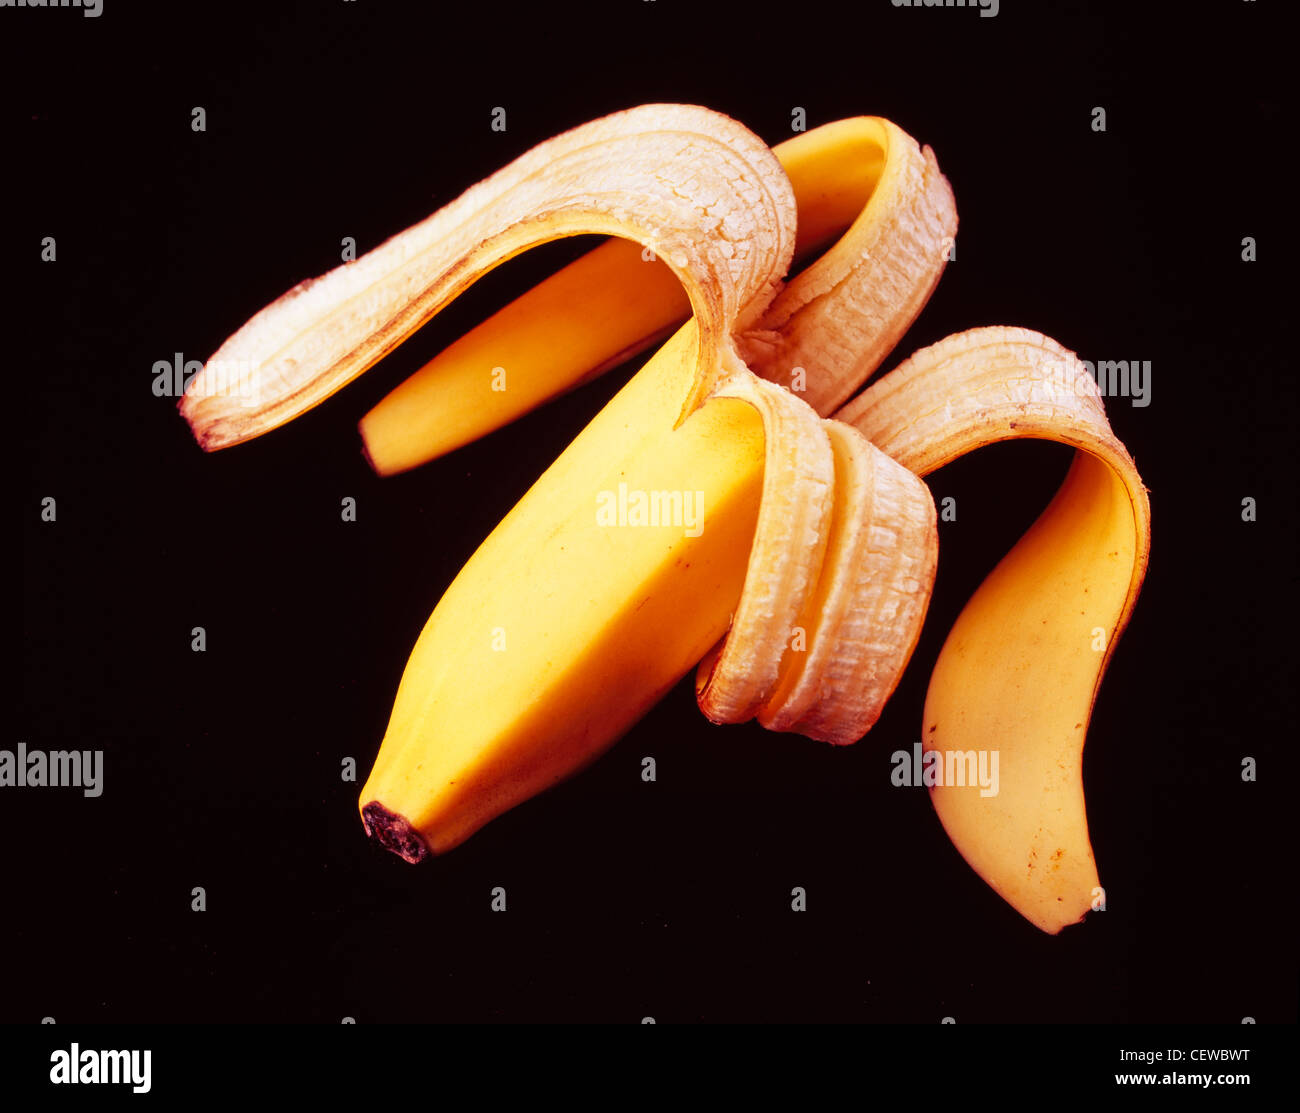 A used banana peel on a black background. - Stock Image